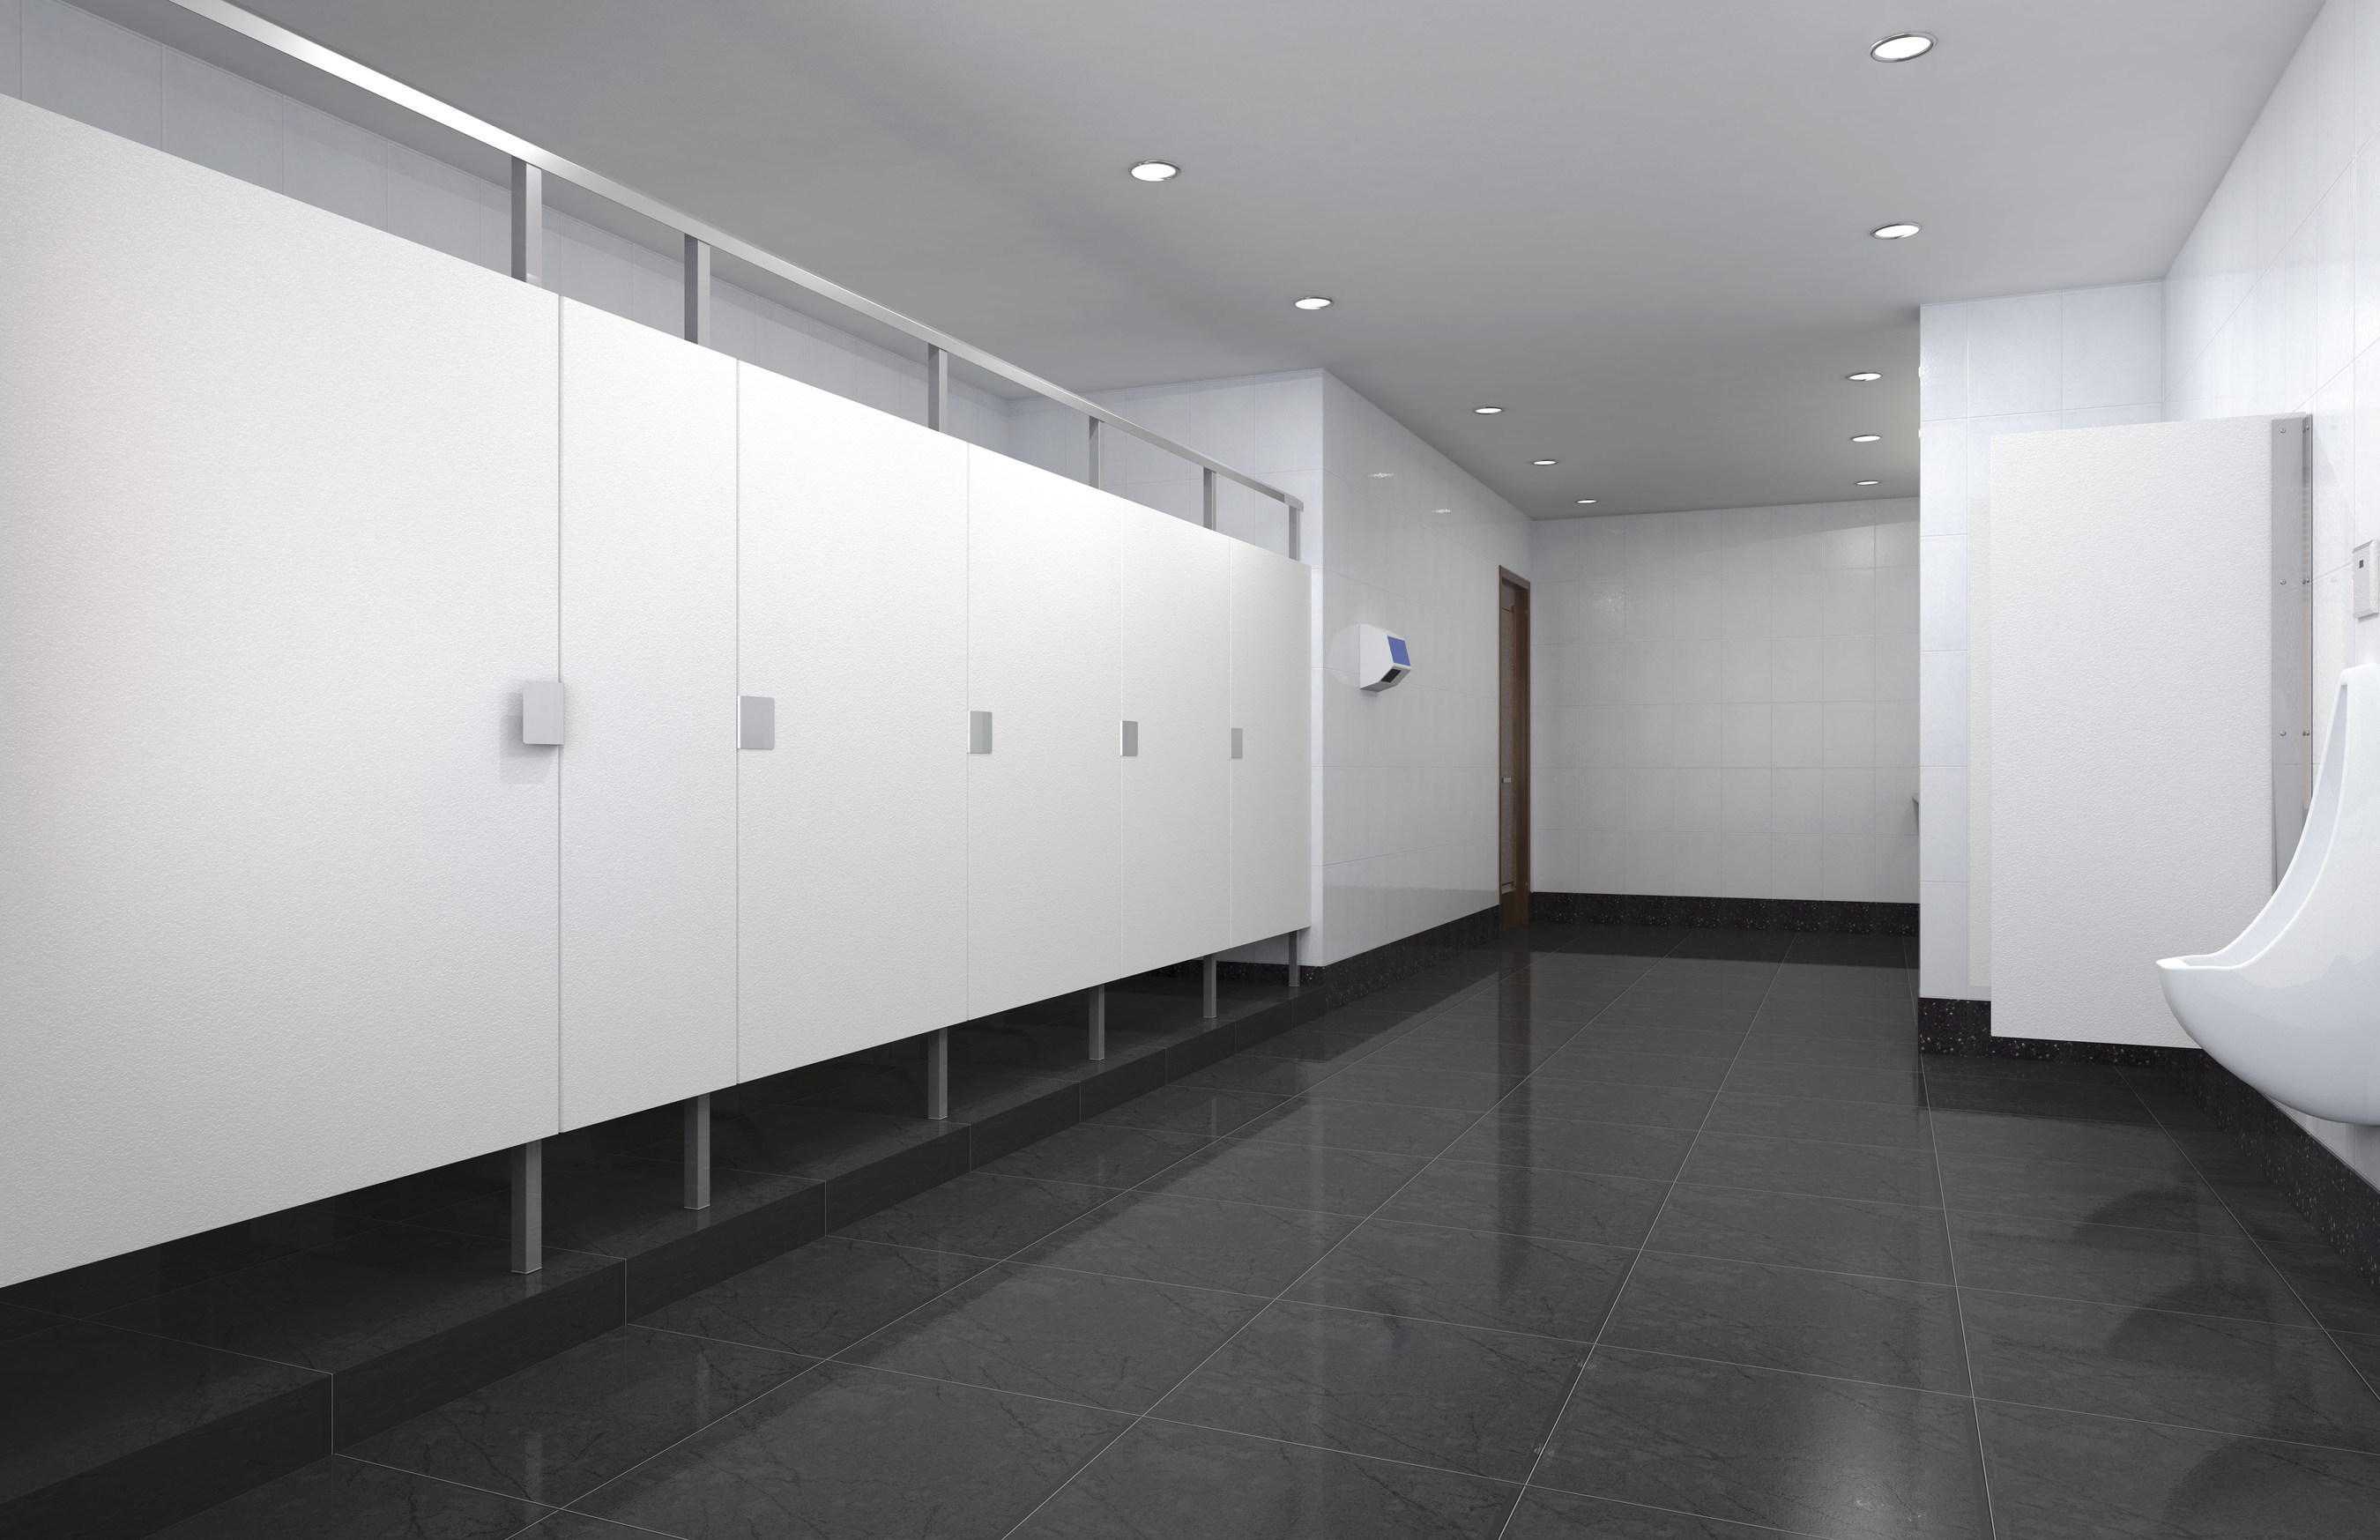 """Eclipse(TM) Partitions from Scranton Products wins a 2016 Architectural Products magazine Product Innovation Award (PIA). Eclipse partitions feature enhanced privacy with clean, ultra-modern looks and attractive hardware. This is achieved through a sleek """"no-sight"""" profile, in an extensive selection of colors and textures designed to blend beautifully with any contemporary bathroom decor.  One of only three winners in the Restroom Category, PIA entrants were judged by a group of 28 independent industry professionals.  The winners represent the most innovative architectural-related products from a wide range of categories and are featured in the November issue of the publication."""